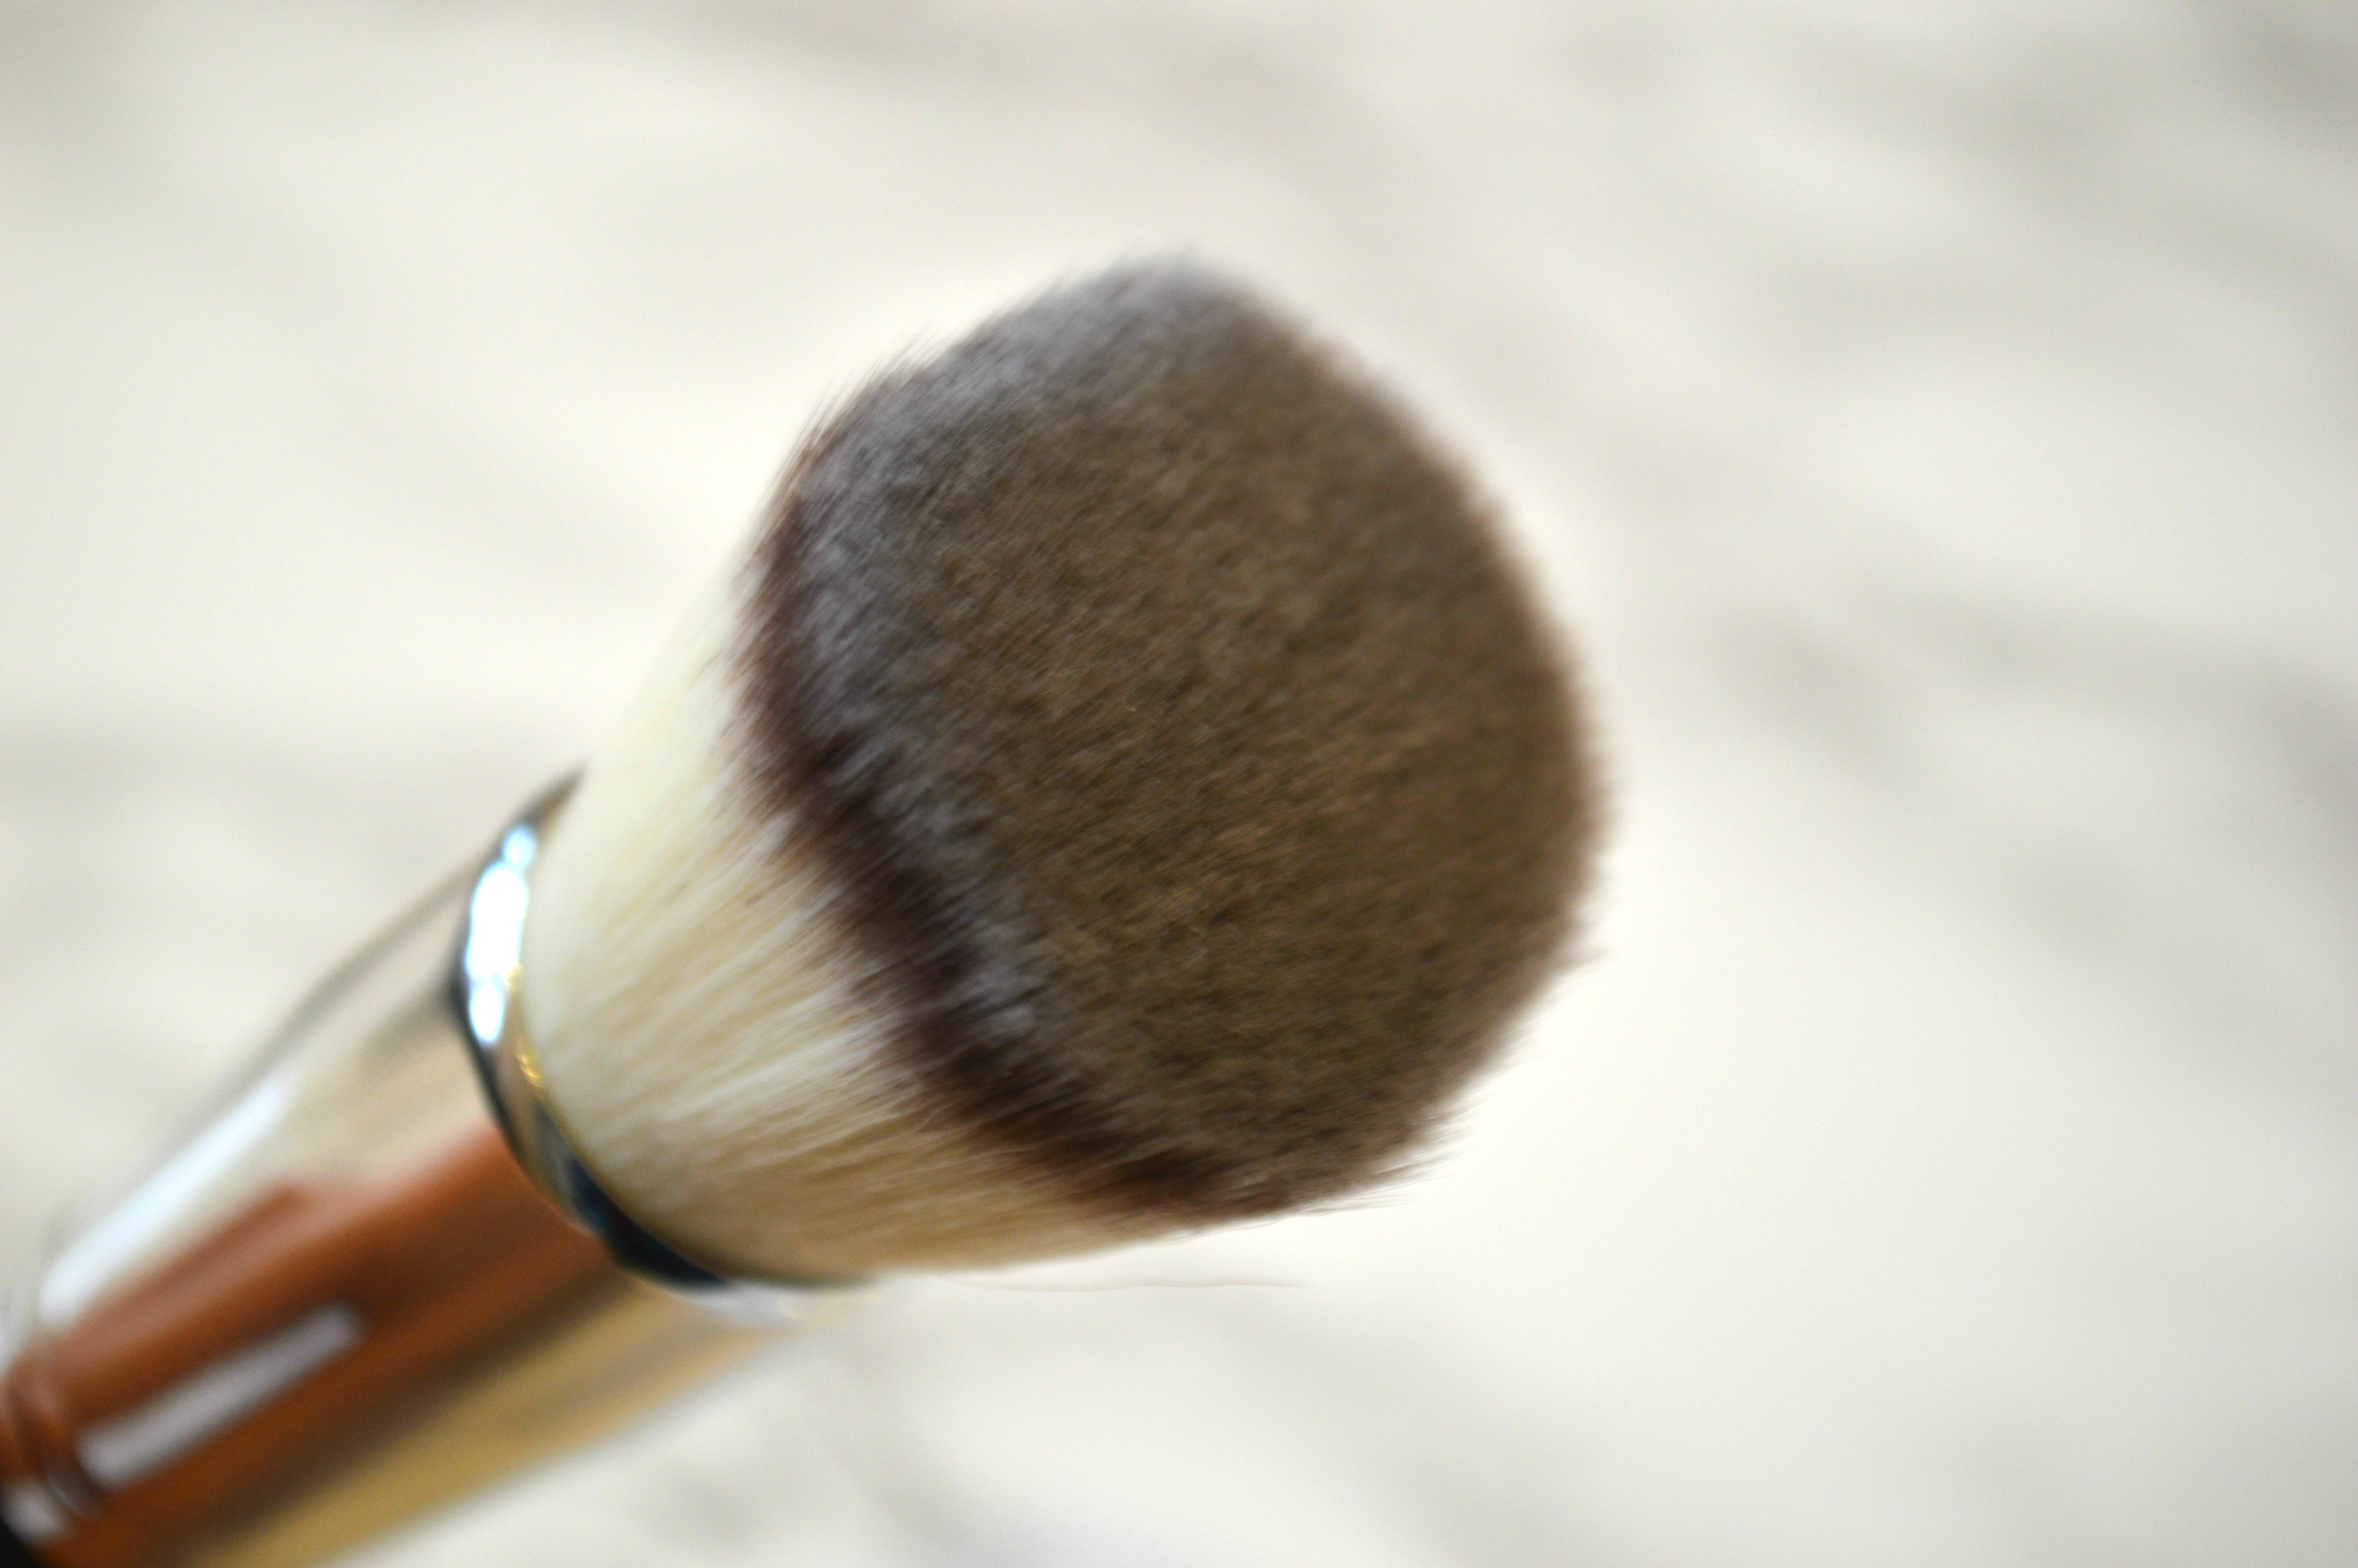 The Perfect Make-Up Brushes for Everyday